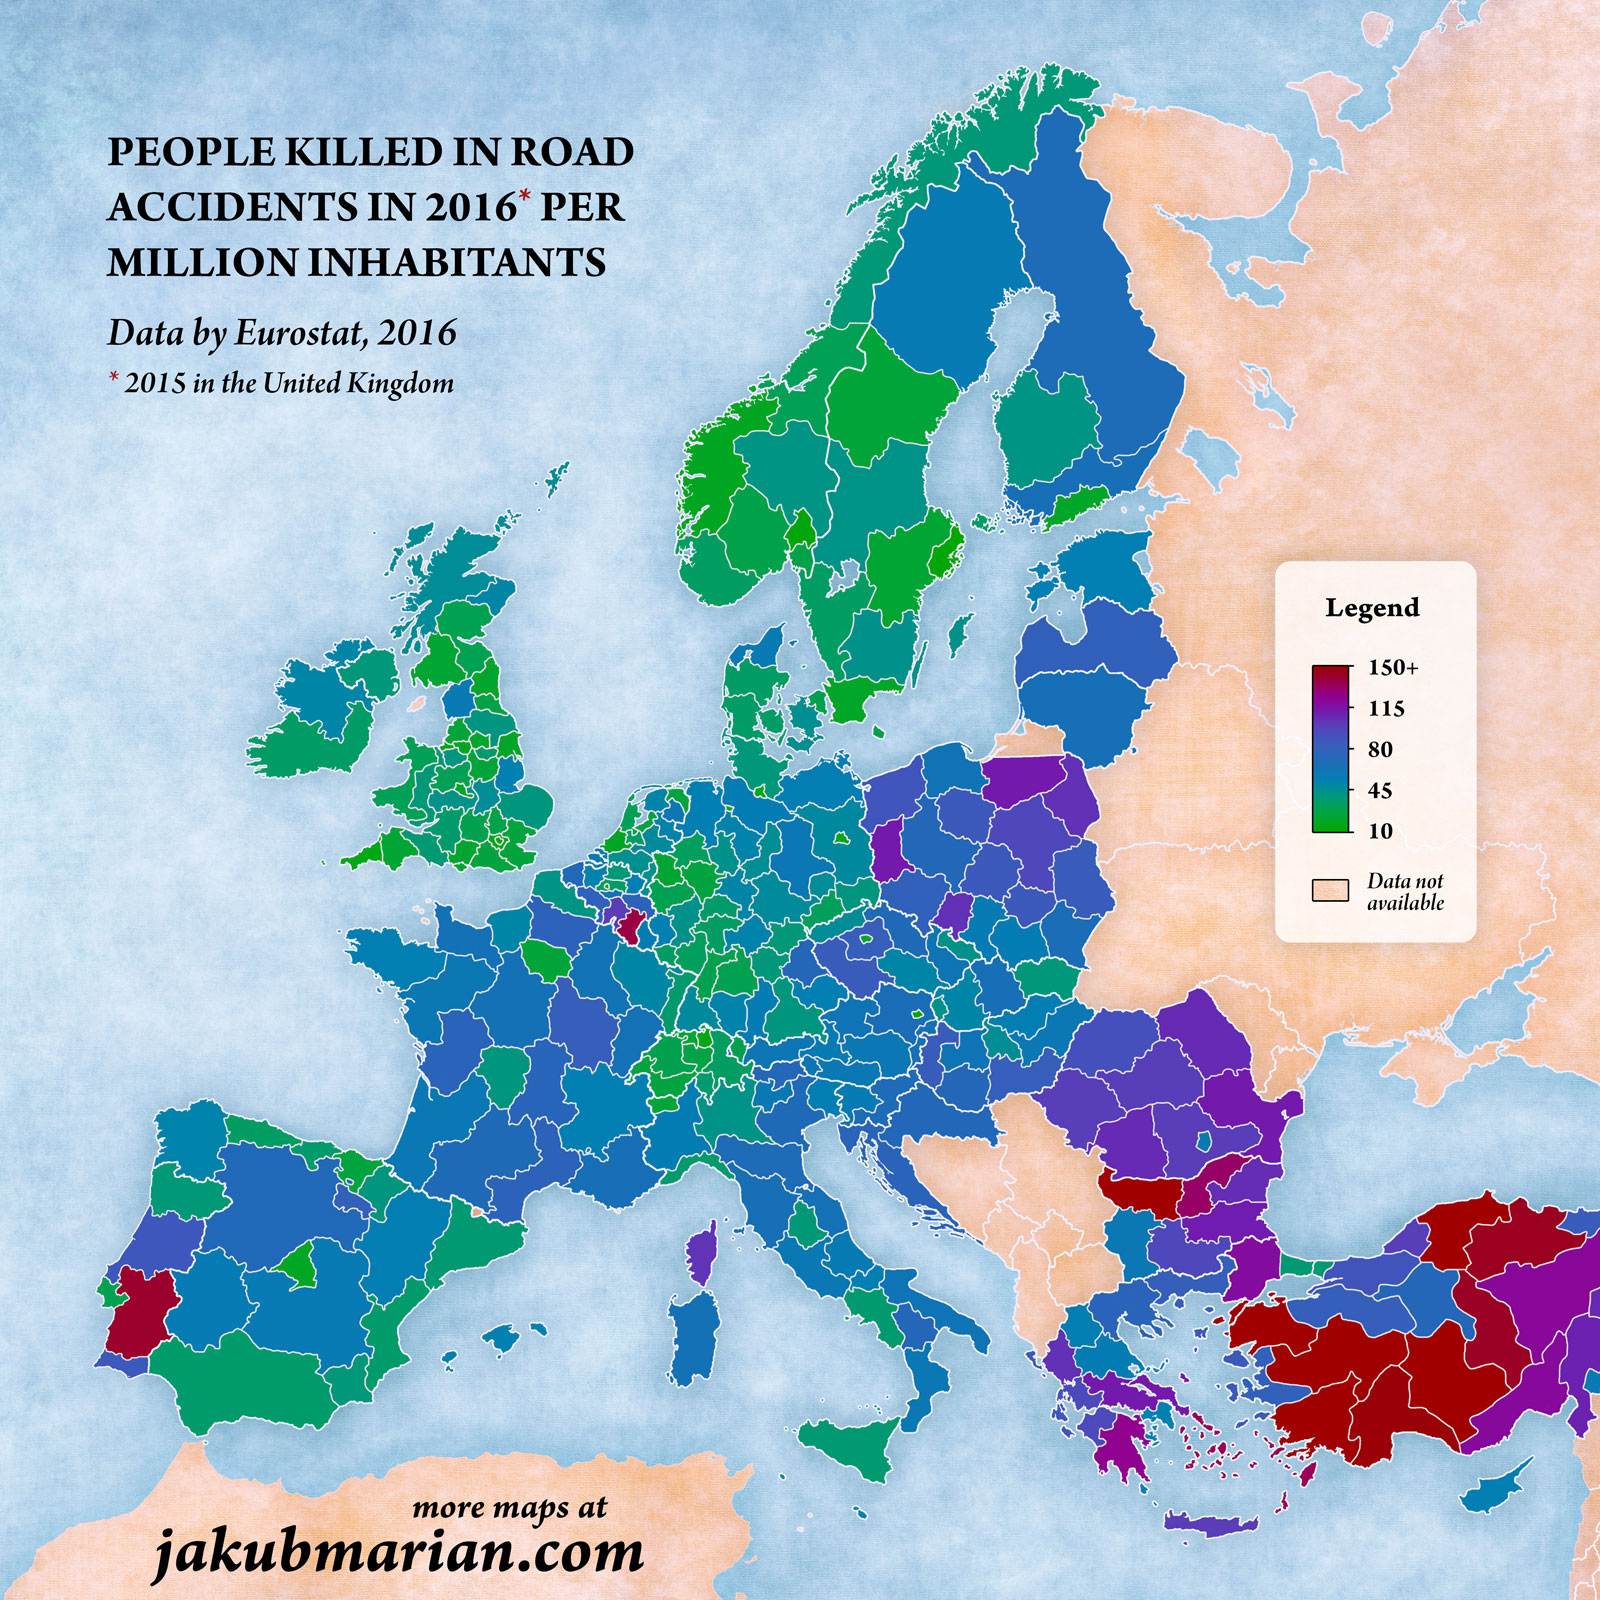 People killed in road accidents per million inhabitants